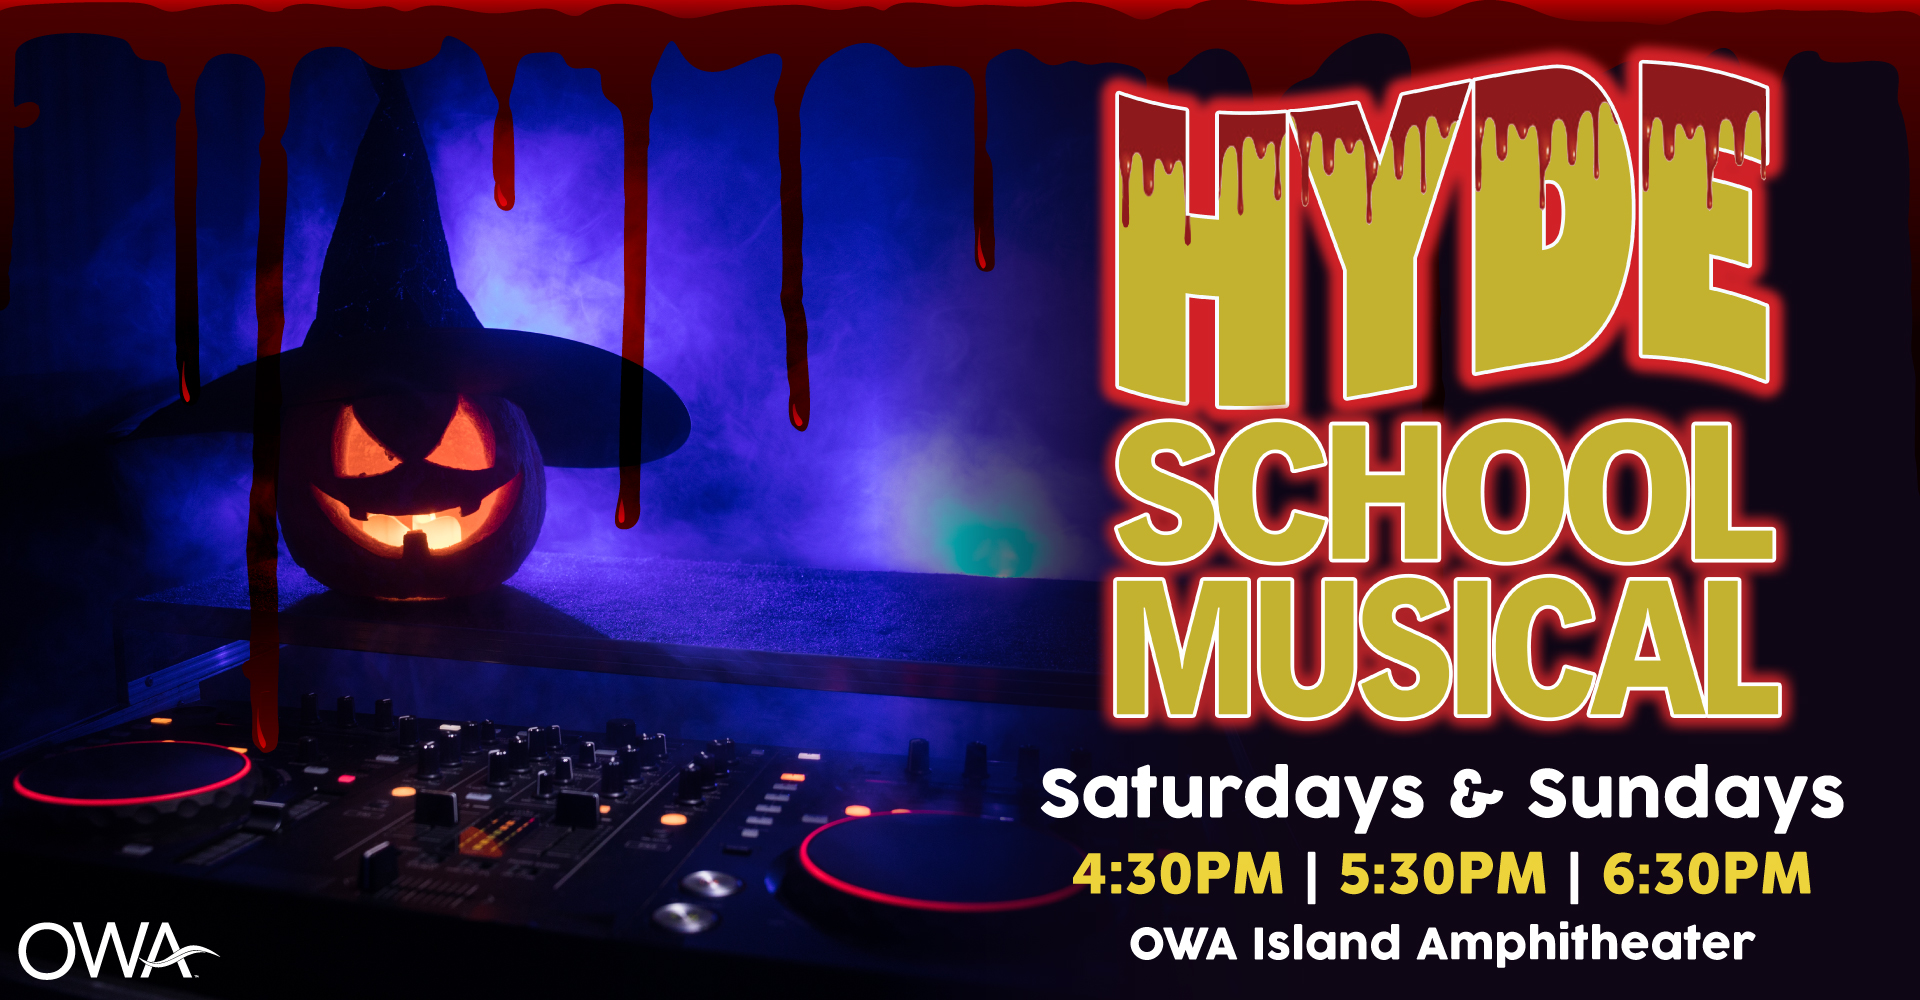 Hyde School Musical: Live Performance